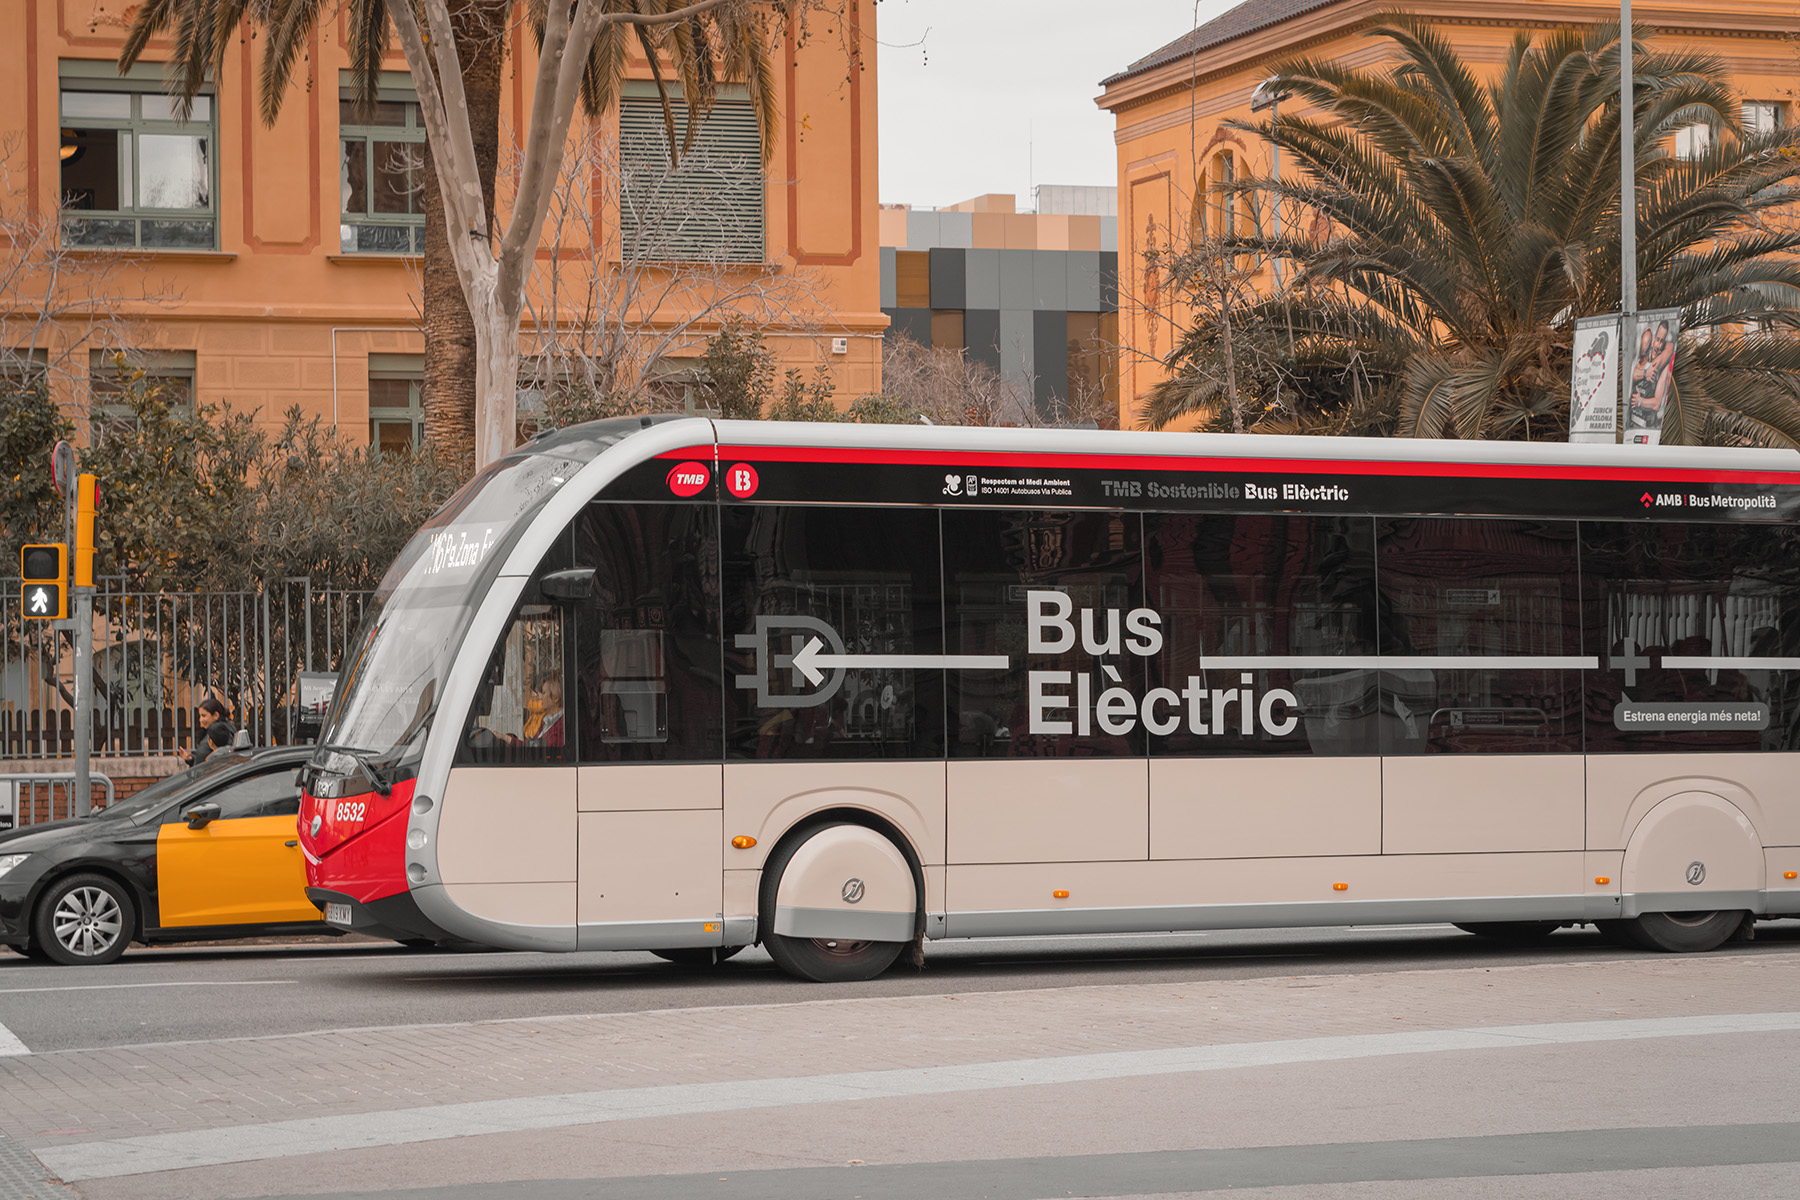 Electric bus in Barcelona